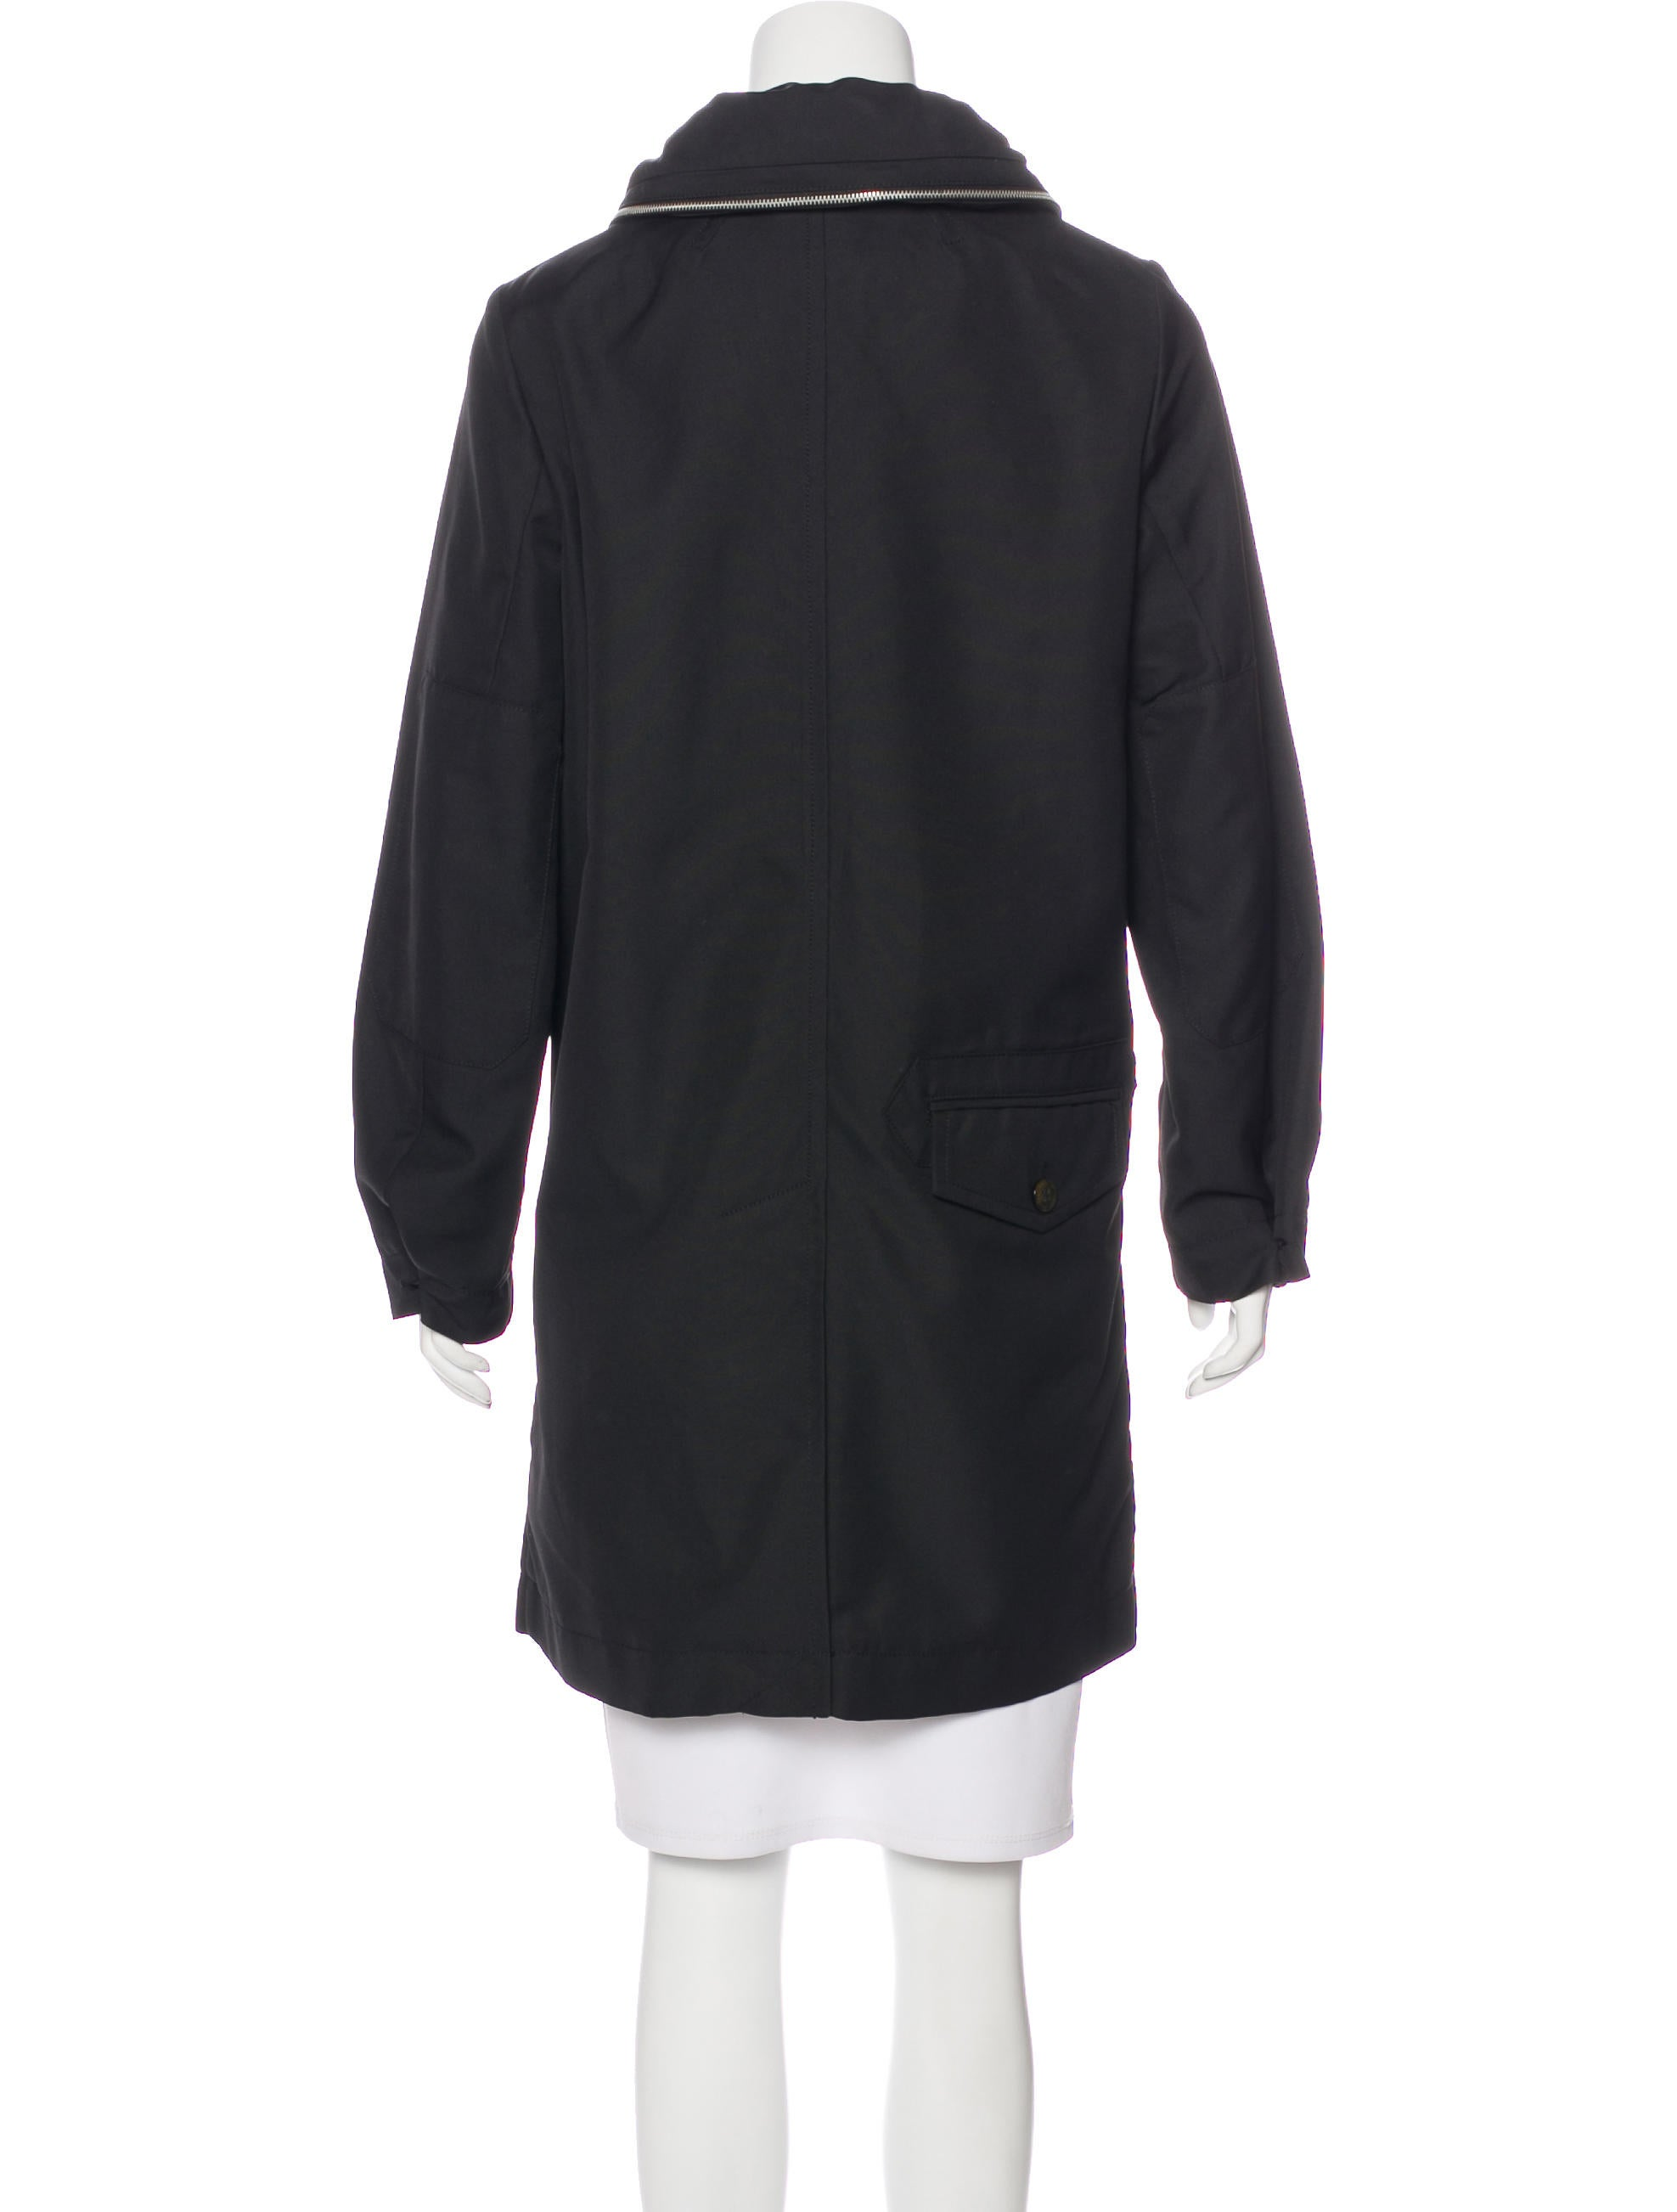 marc by marc jacobs rain coat w tags clothing. Black Bedroom Furniture Sets. Home Design Ideas